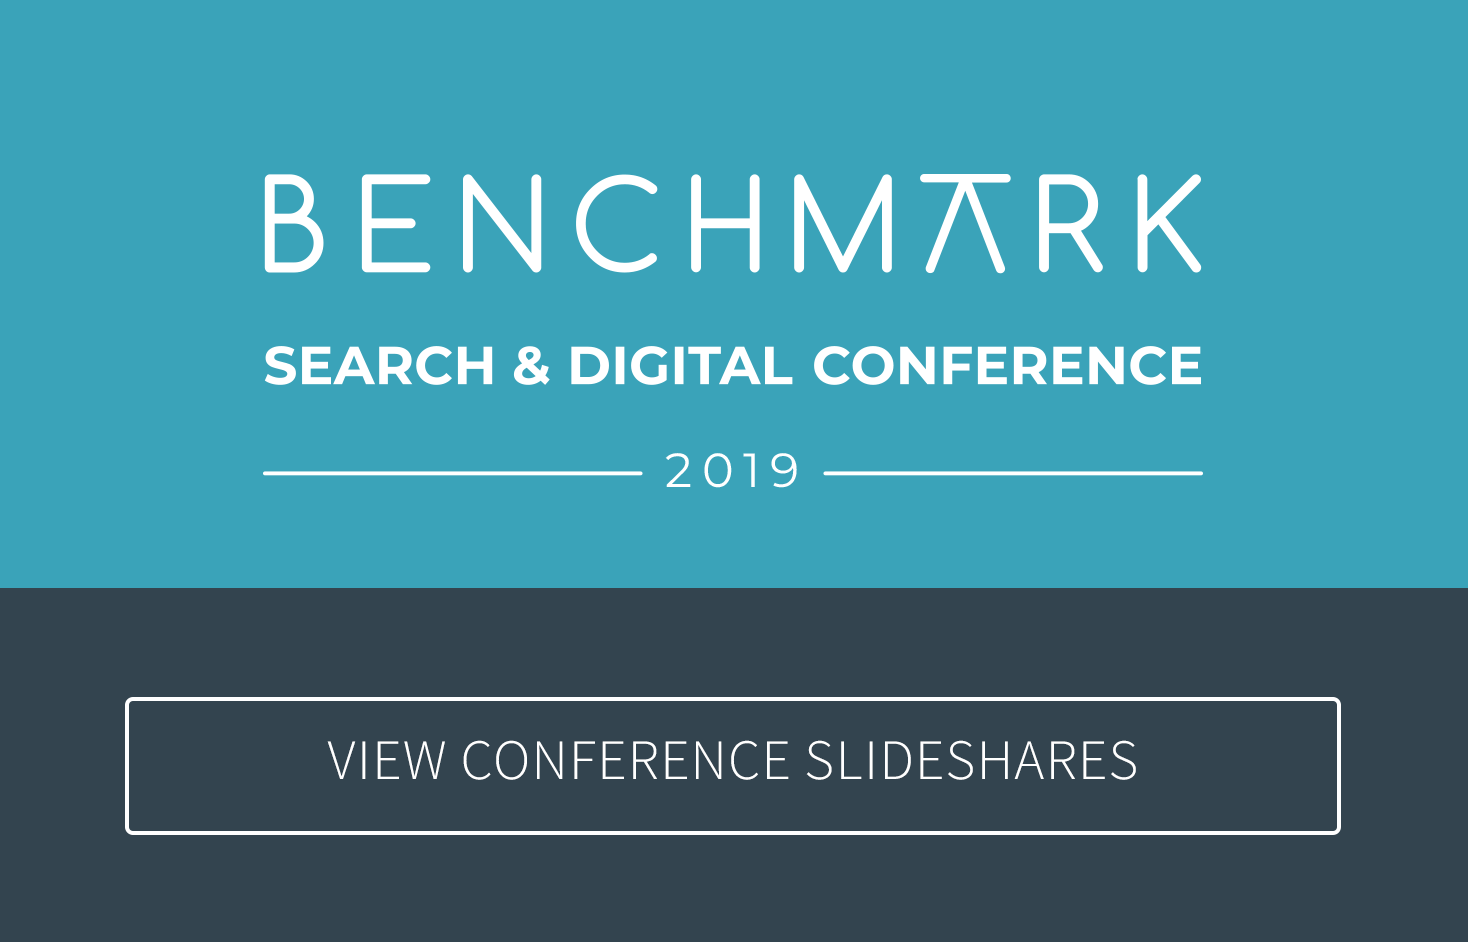 Benchmark 2019 Slides